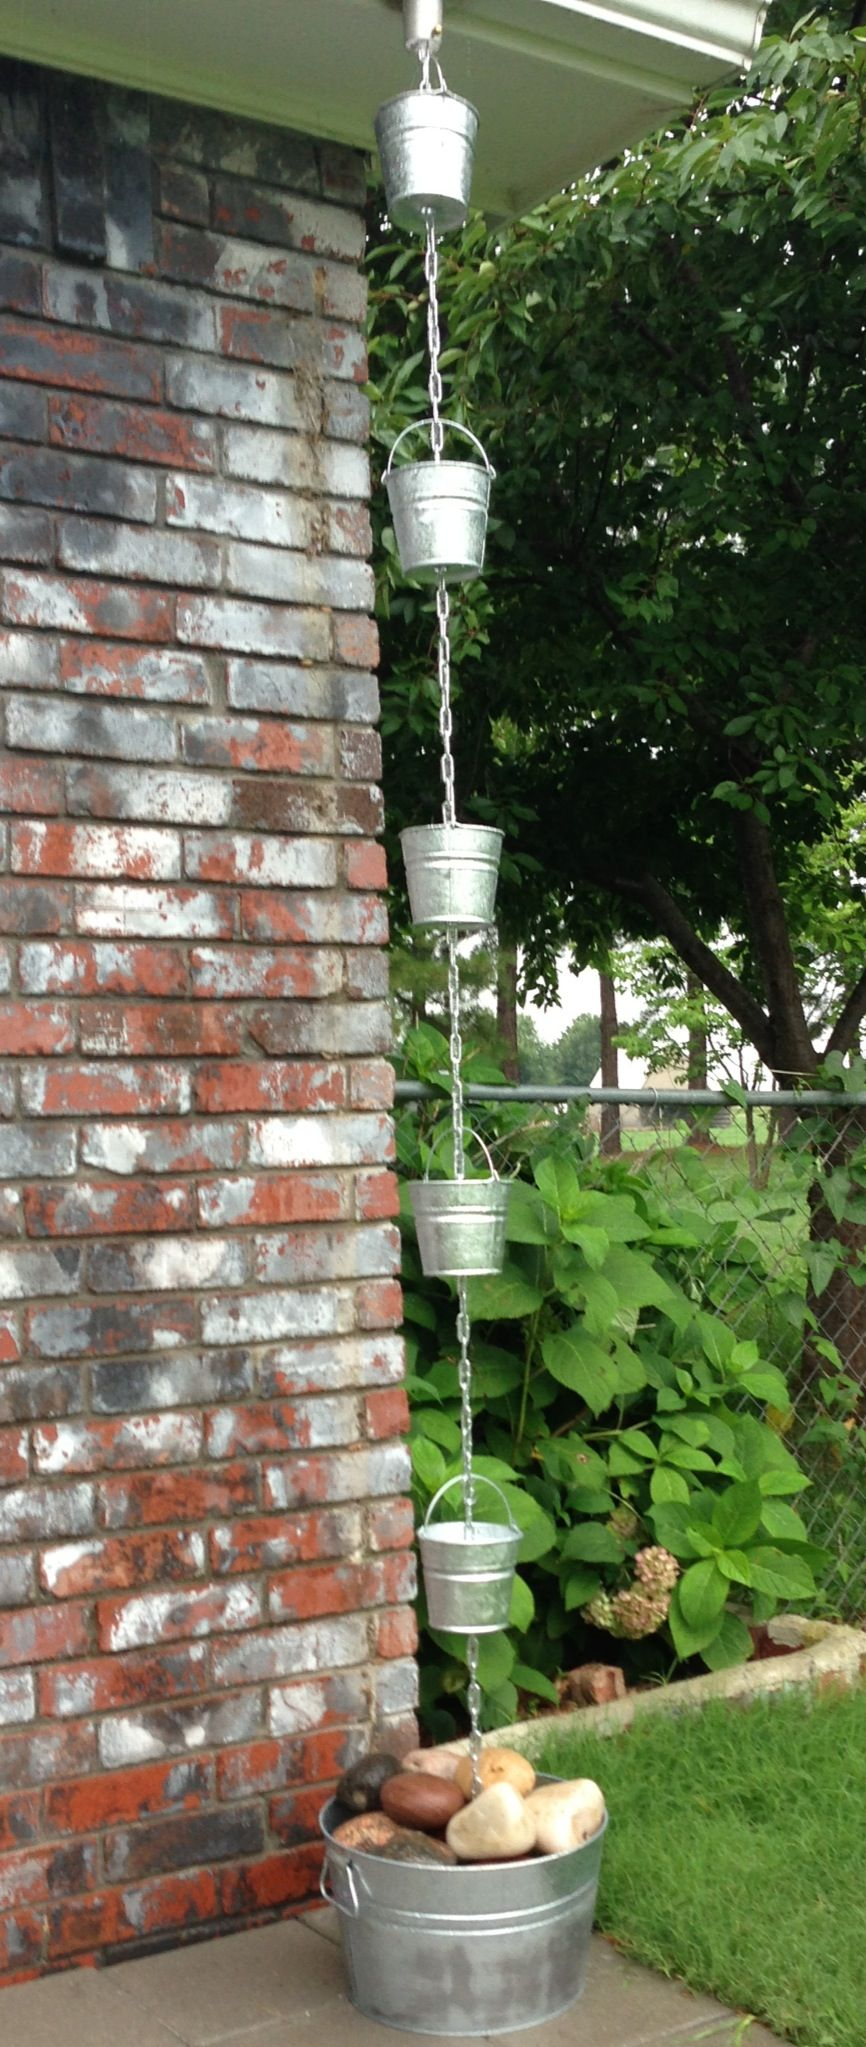 10 Creative DIY Rain Chain Ideas | Rain chains, Buckeyes and Rain